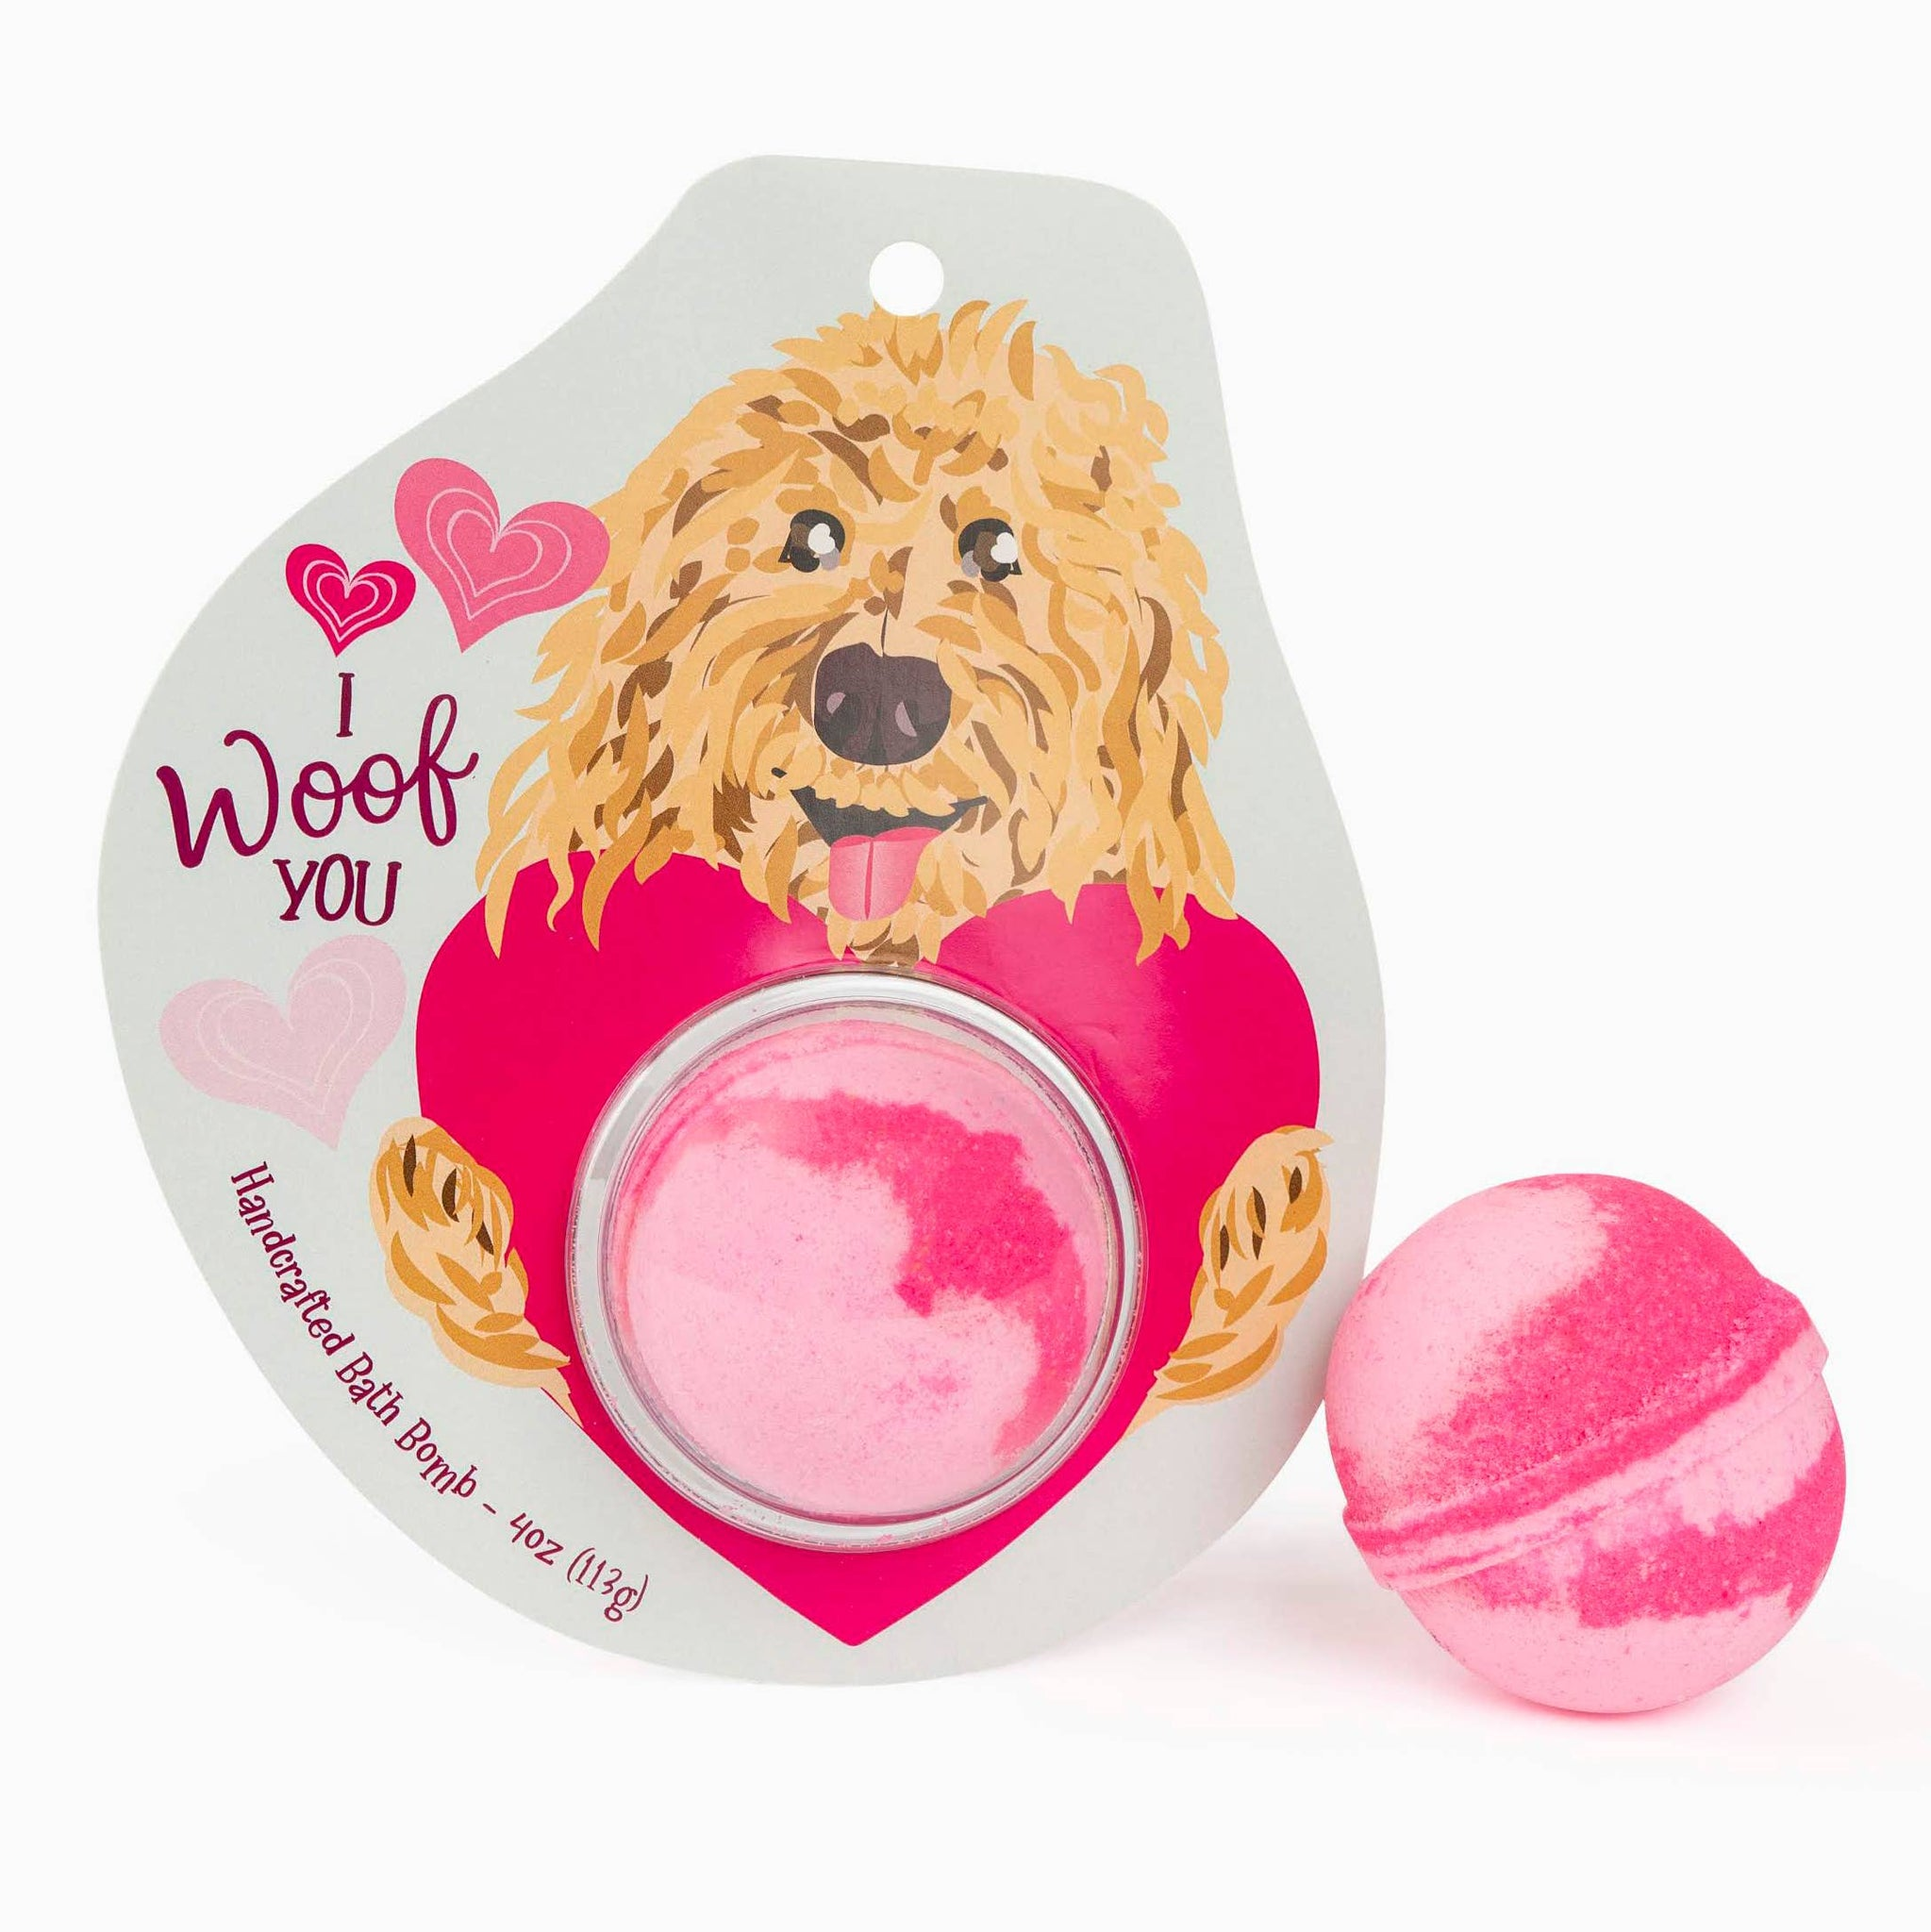 Woof You Goldendoodle Clamshell Bath Bomb